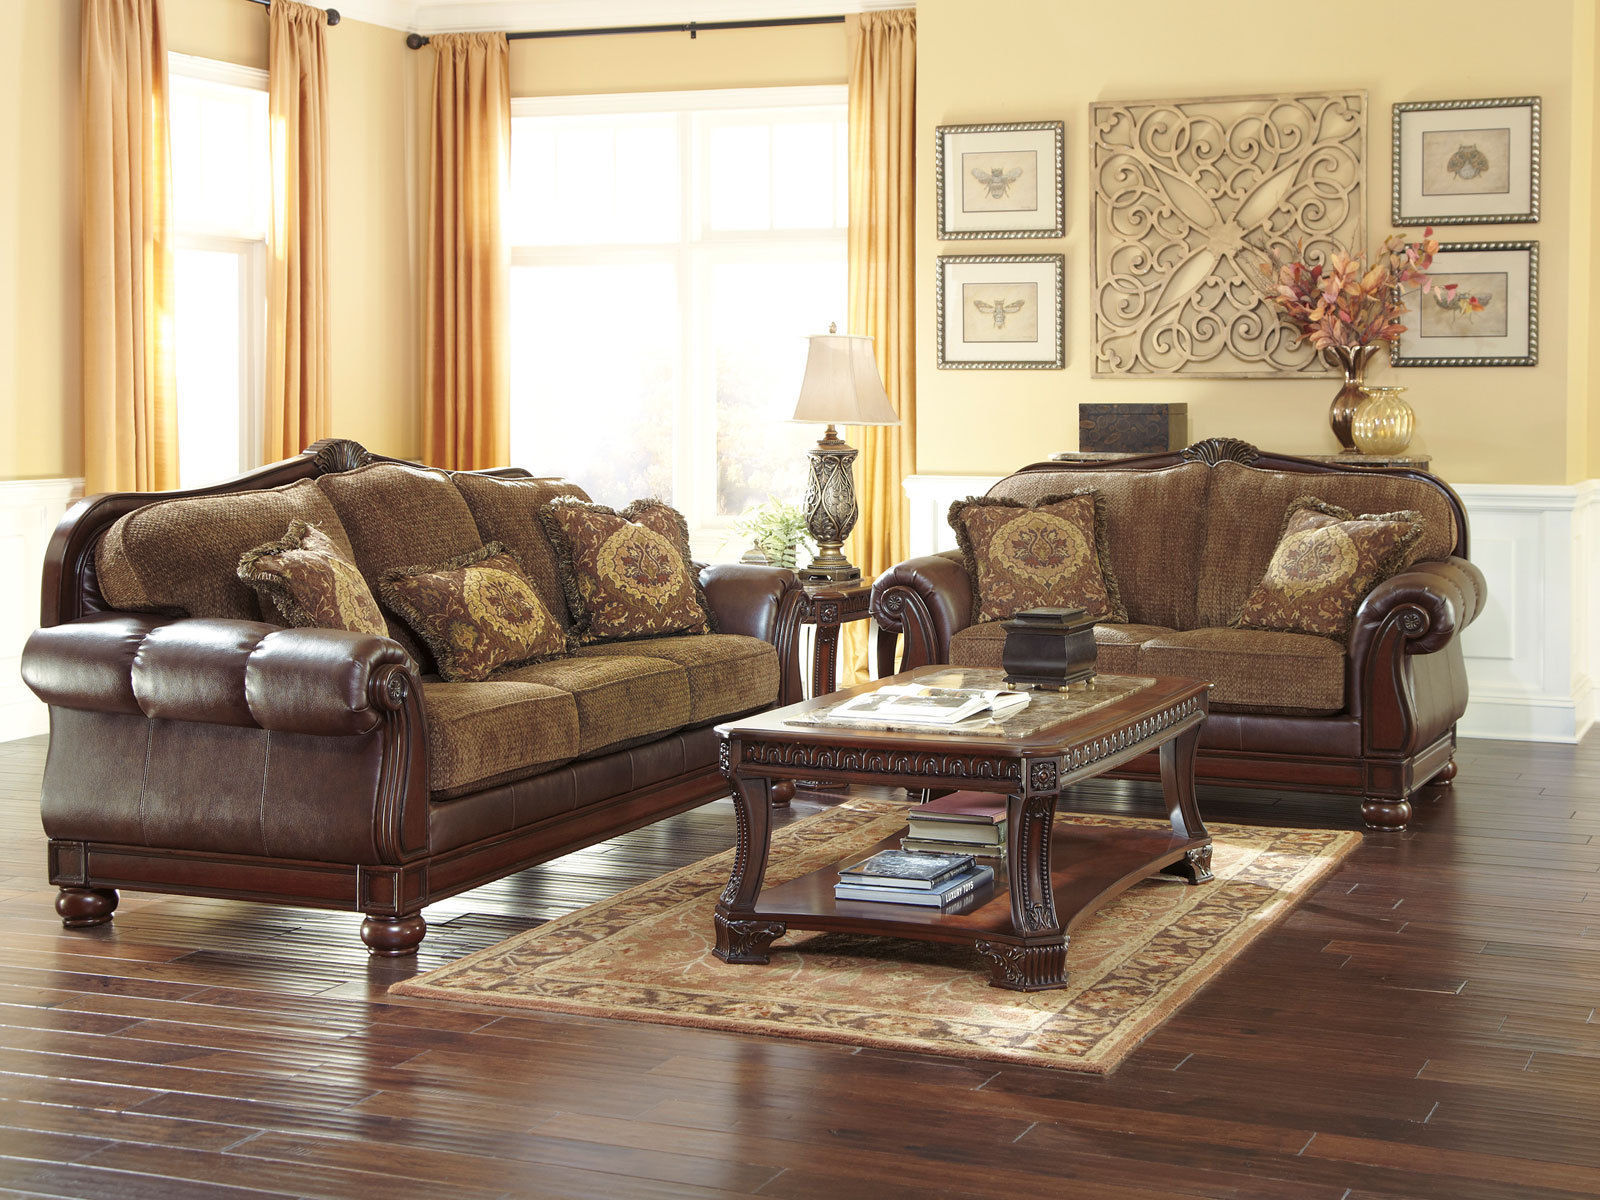 naples old world bonded leather fabric sofa couch set